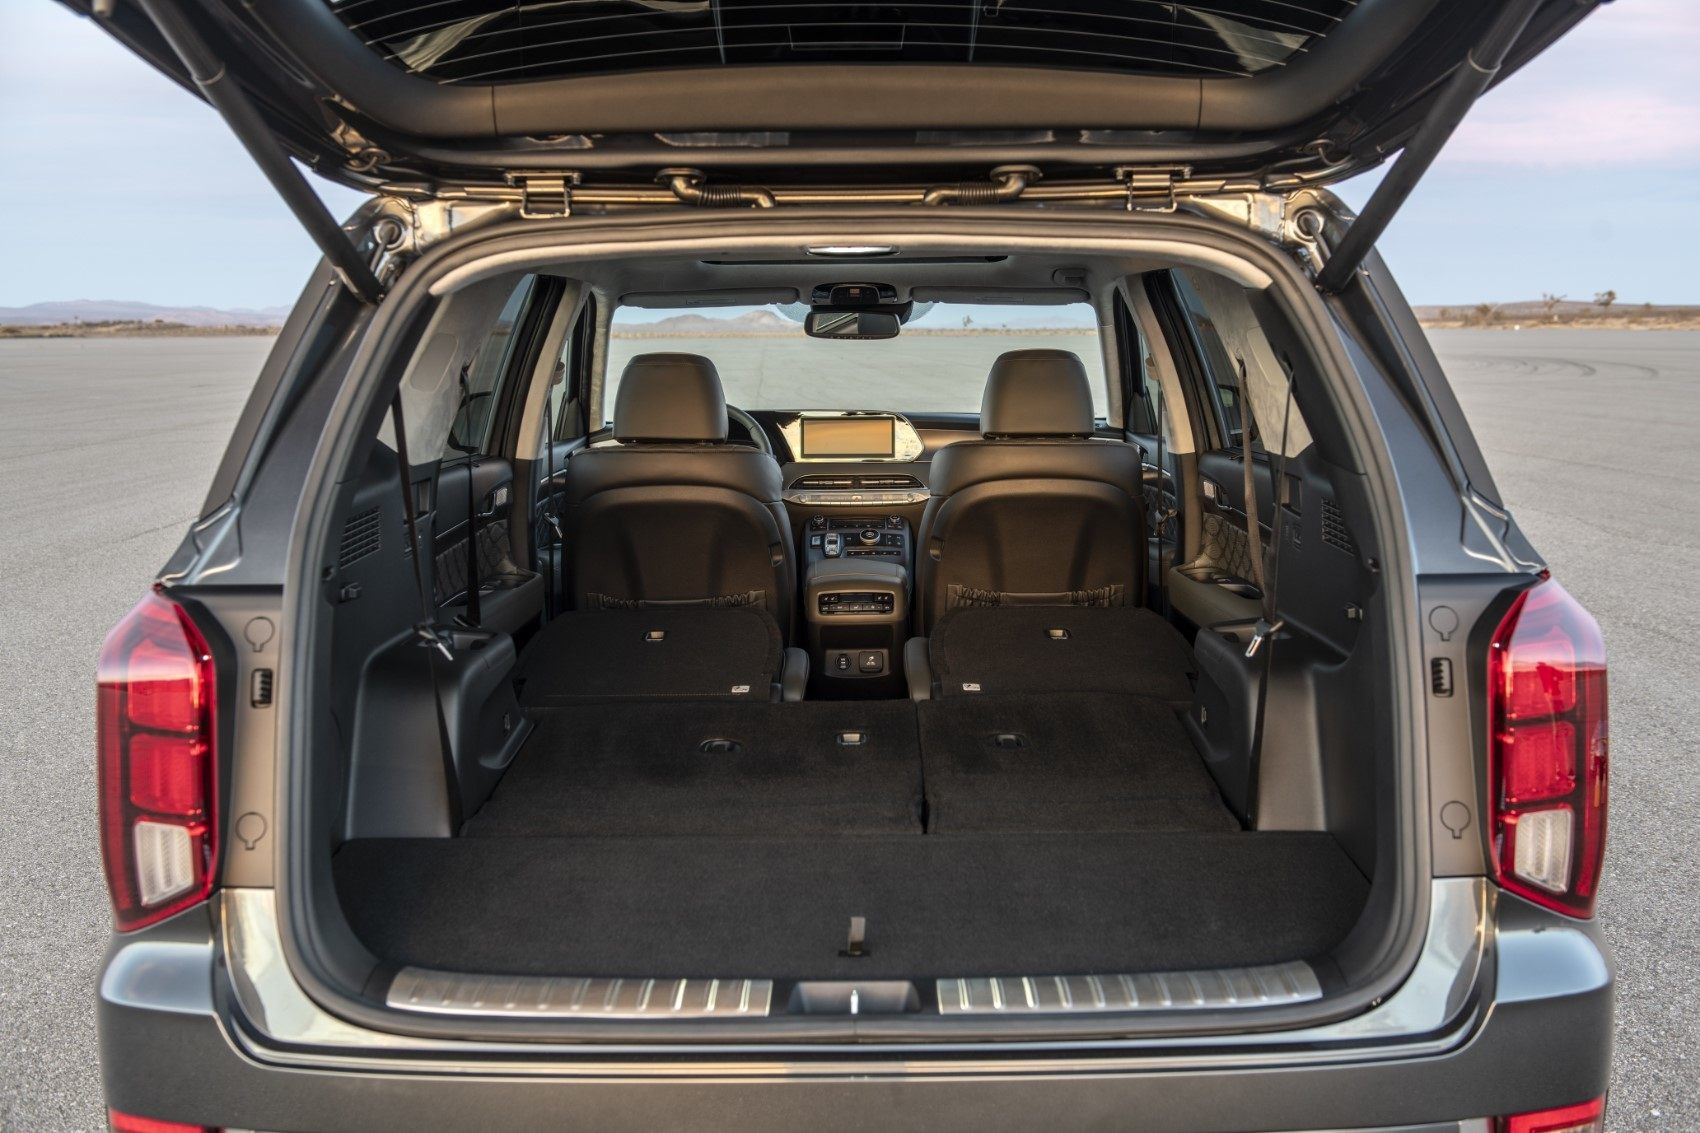 2020 Hyundai Palisade rear cargo area with all seats folded down.